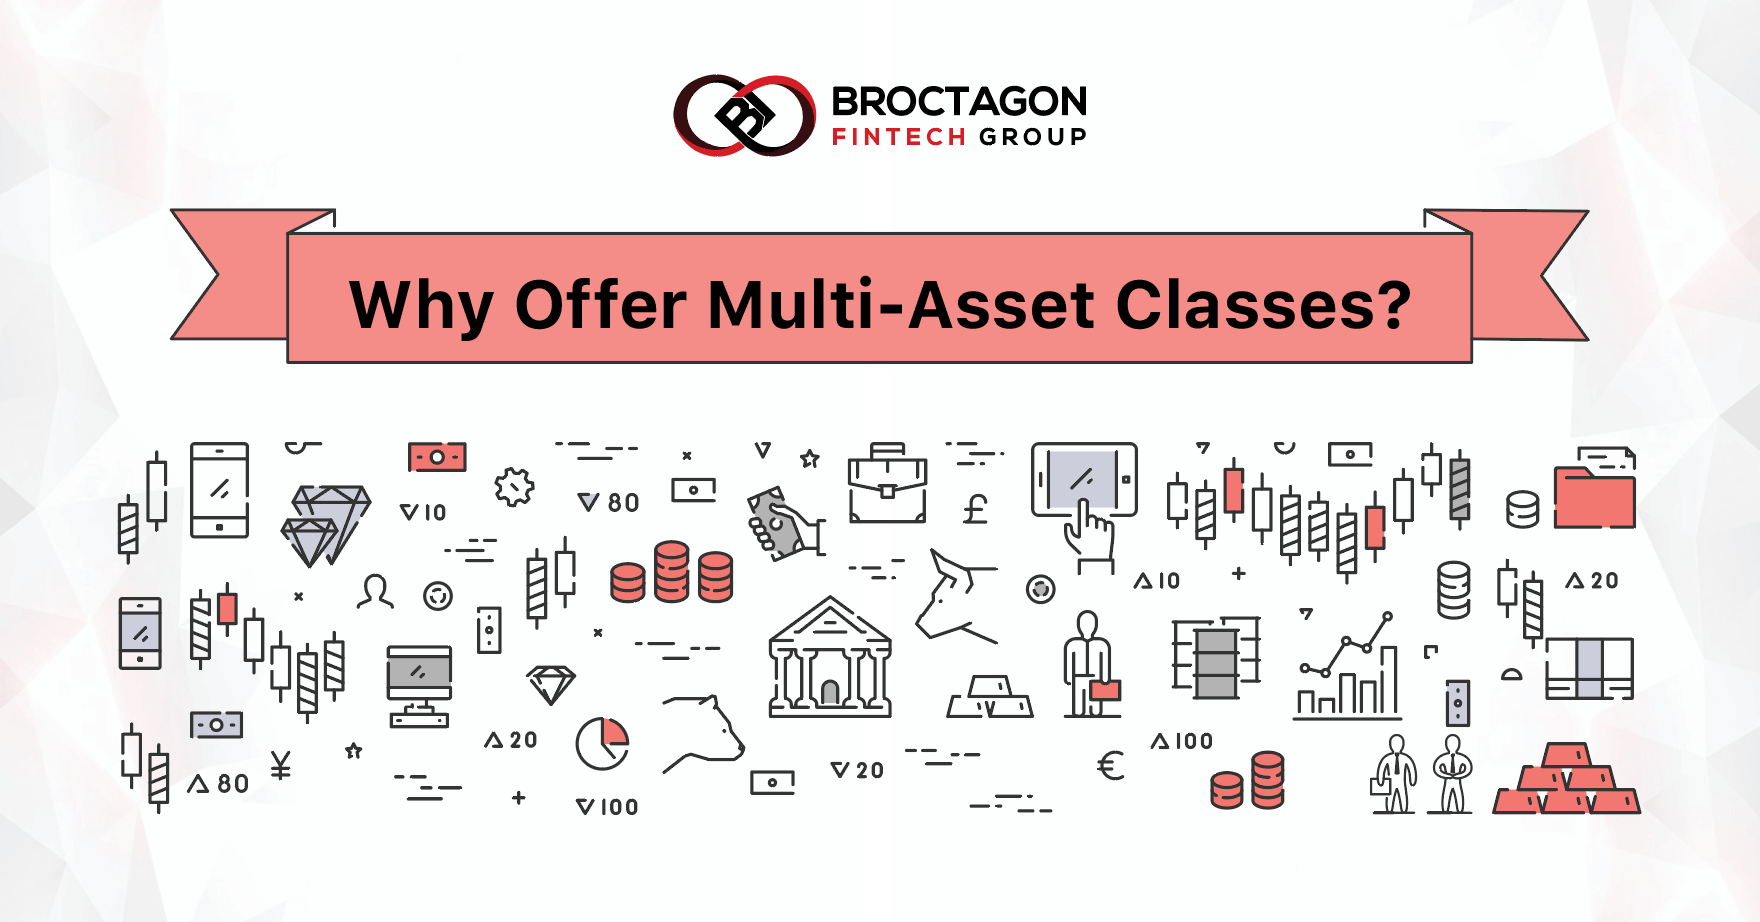 why offer multi-asset classes